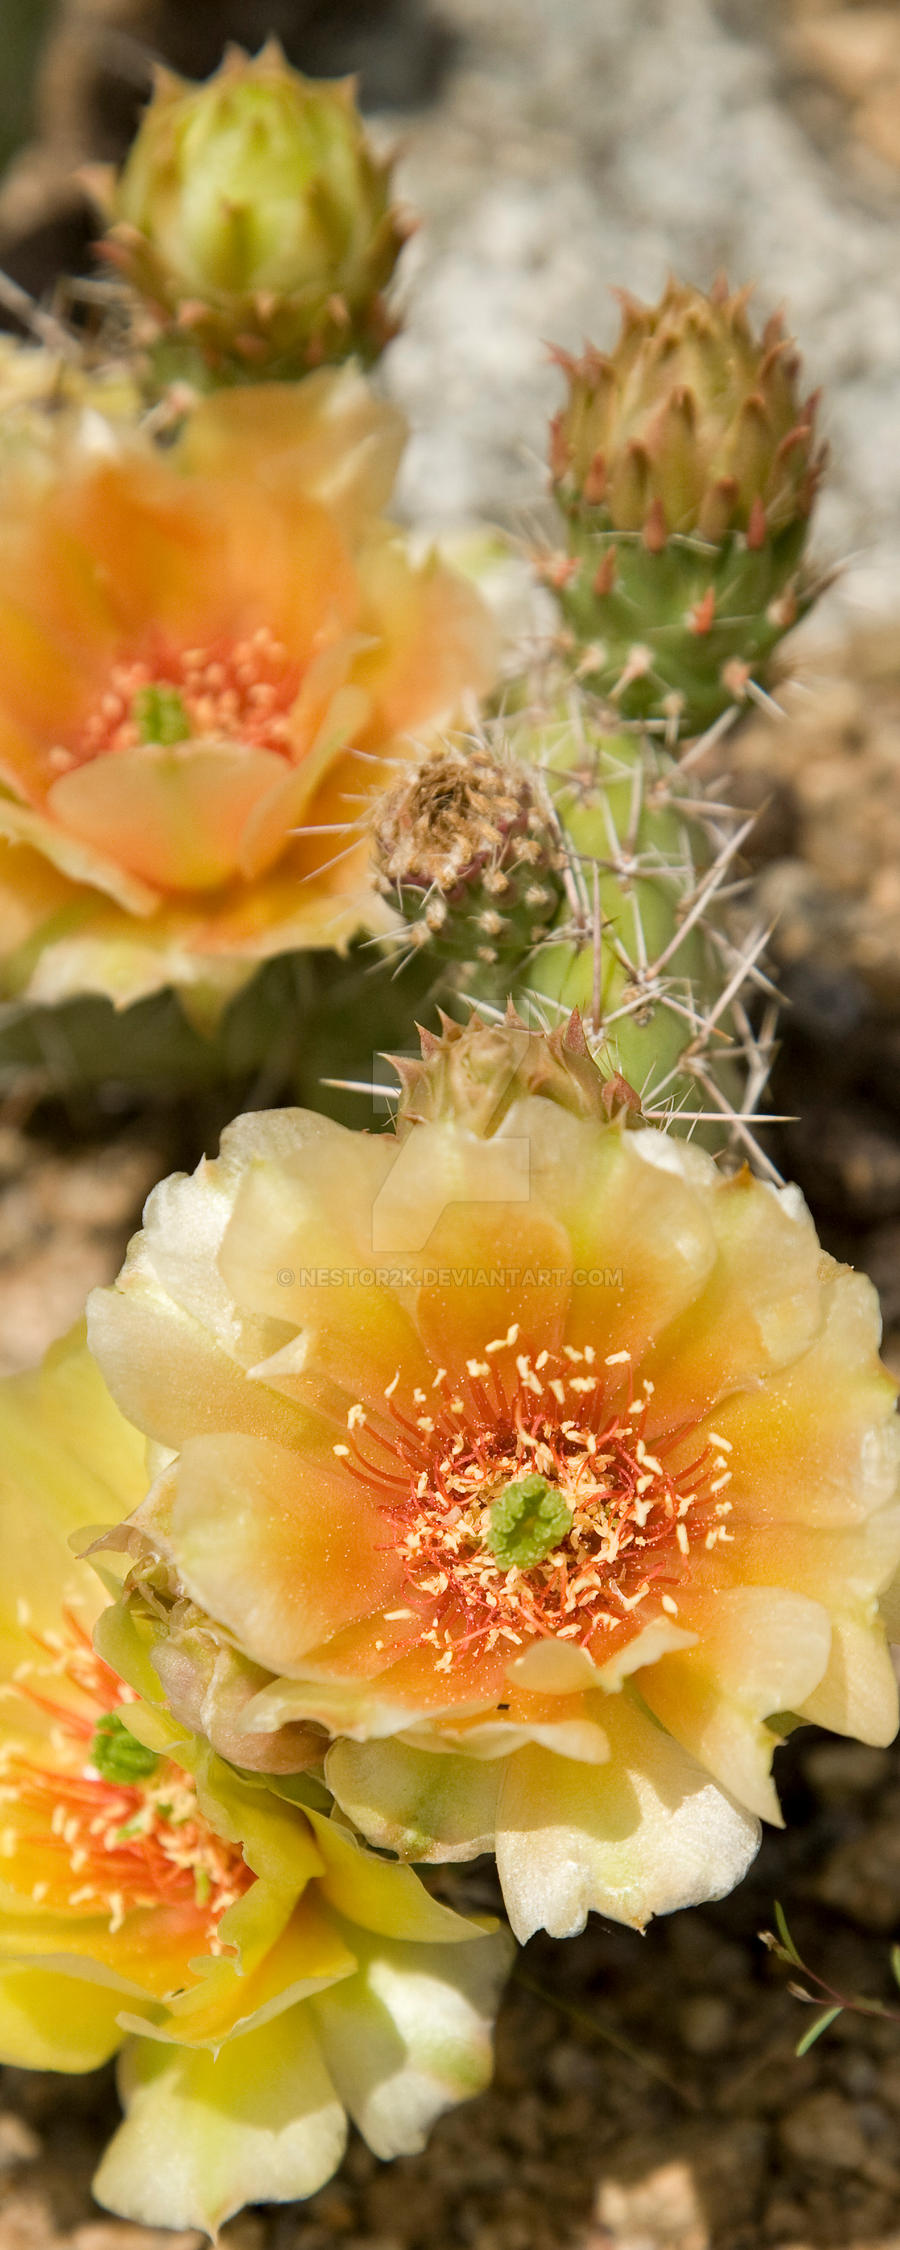 Cactus Flower Tall by Nestor2k